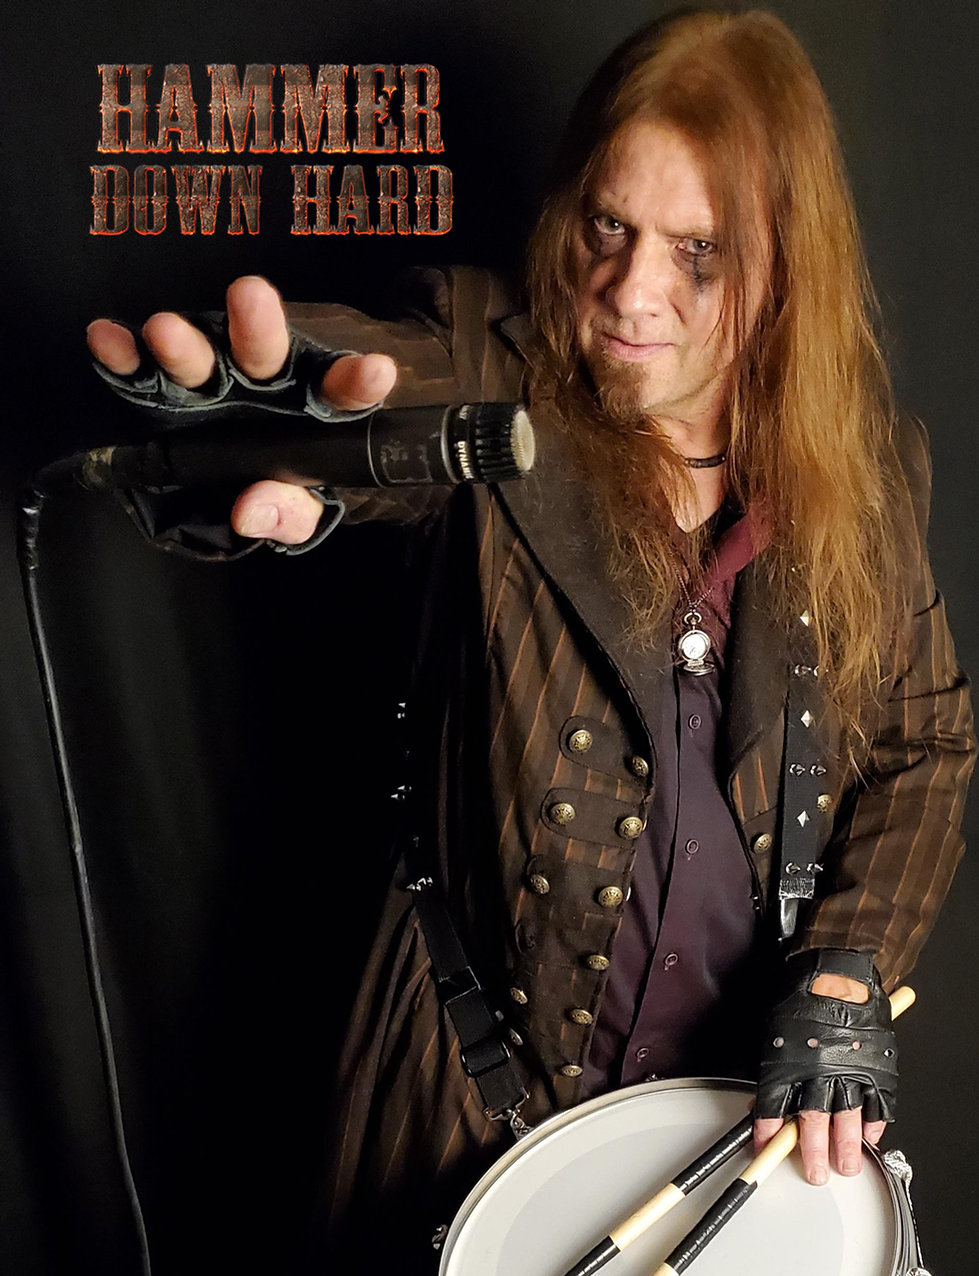 lonnie drum poster 8x10.jpg